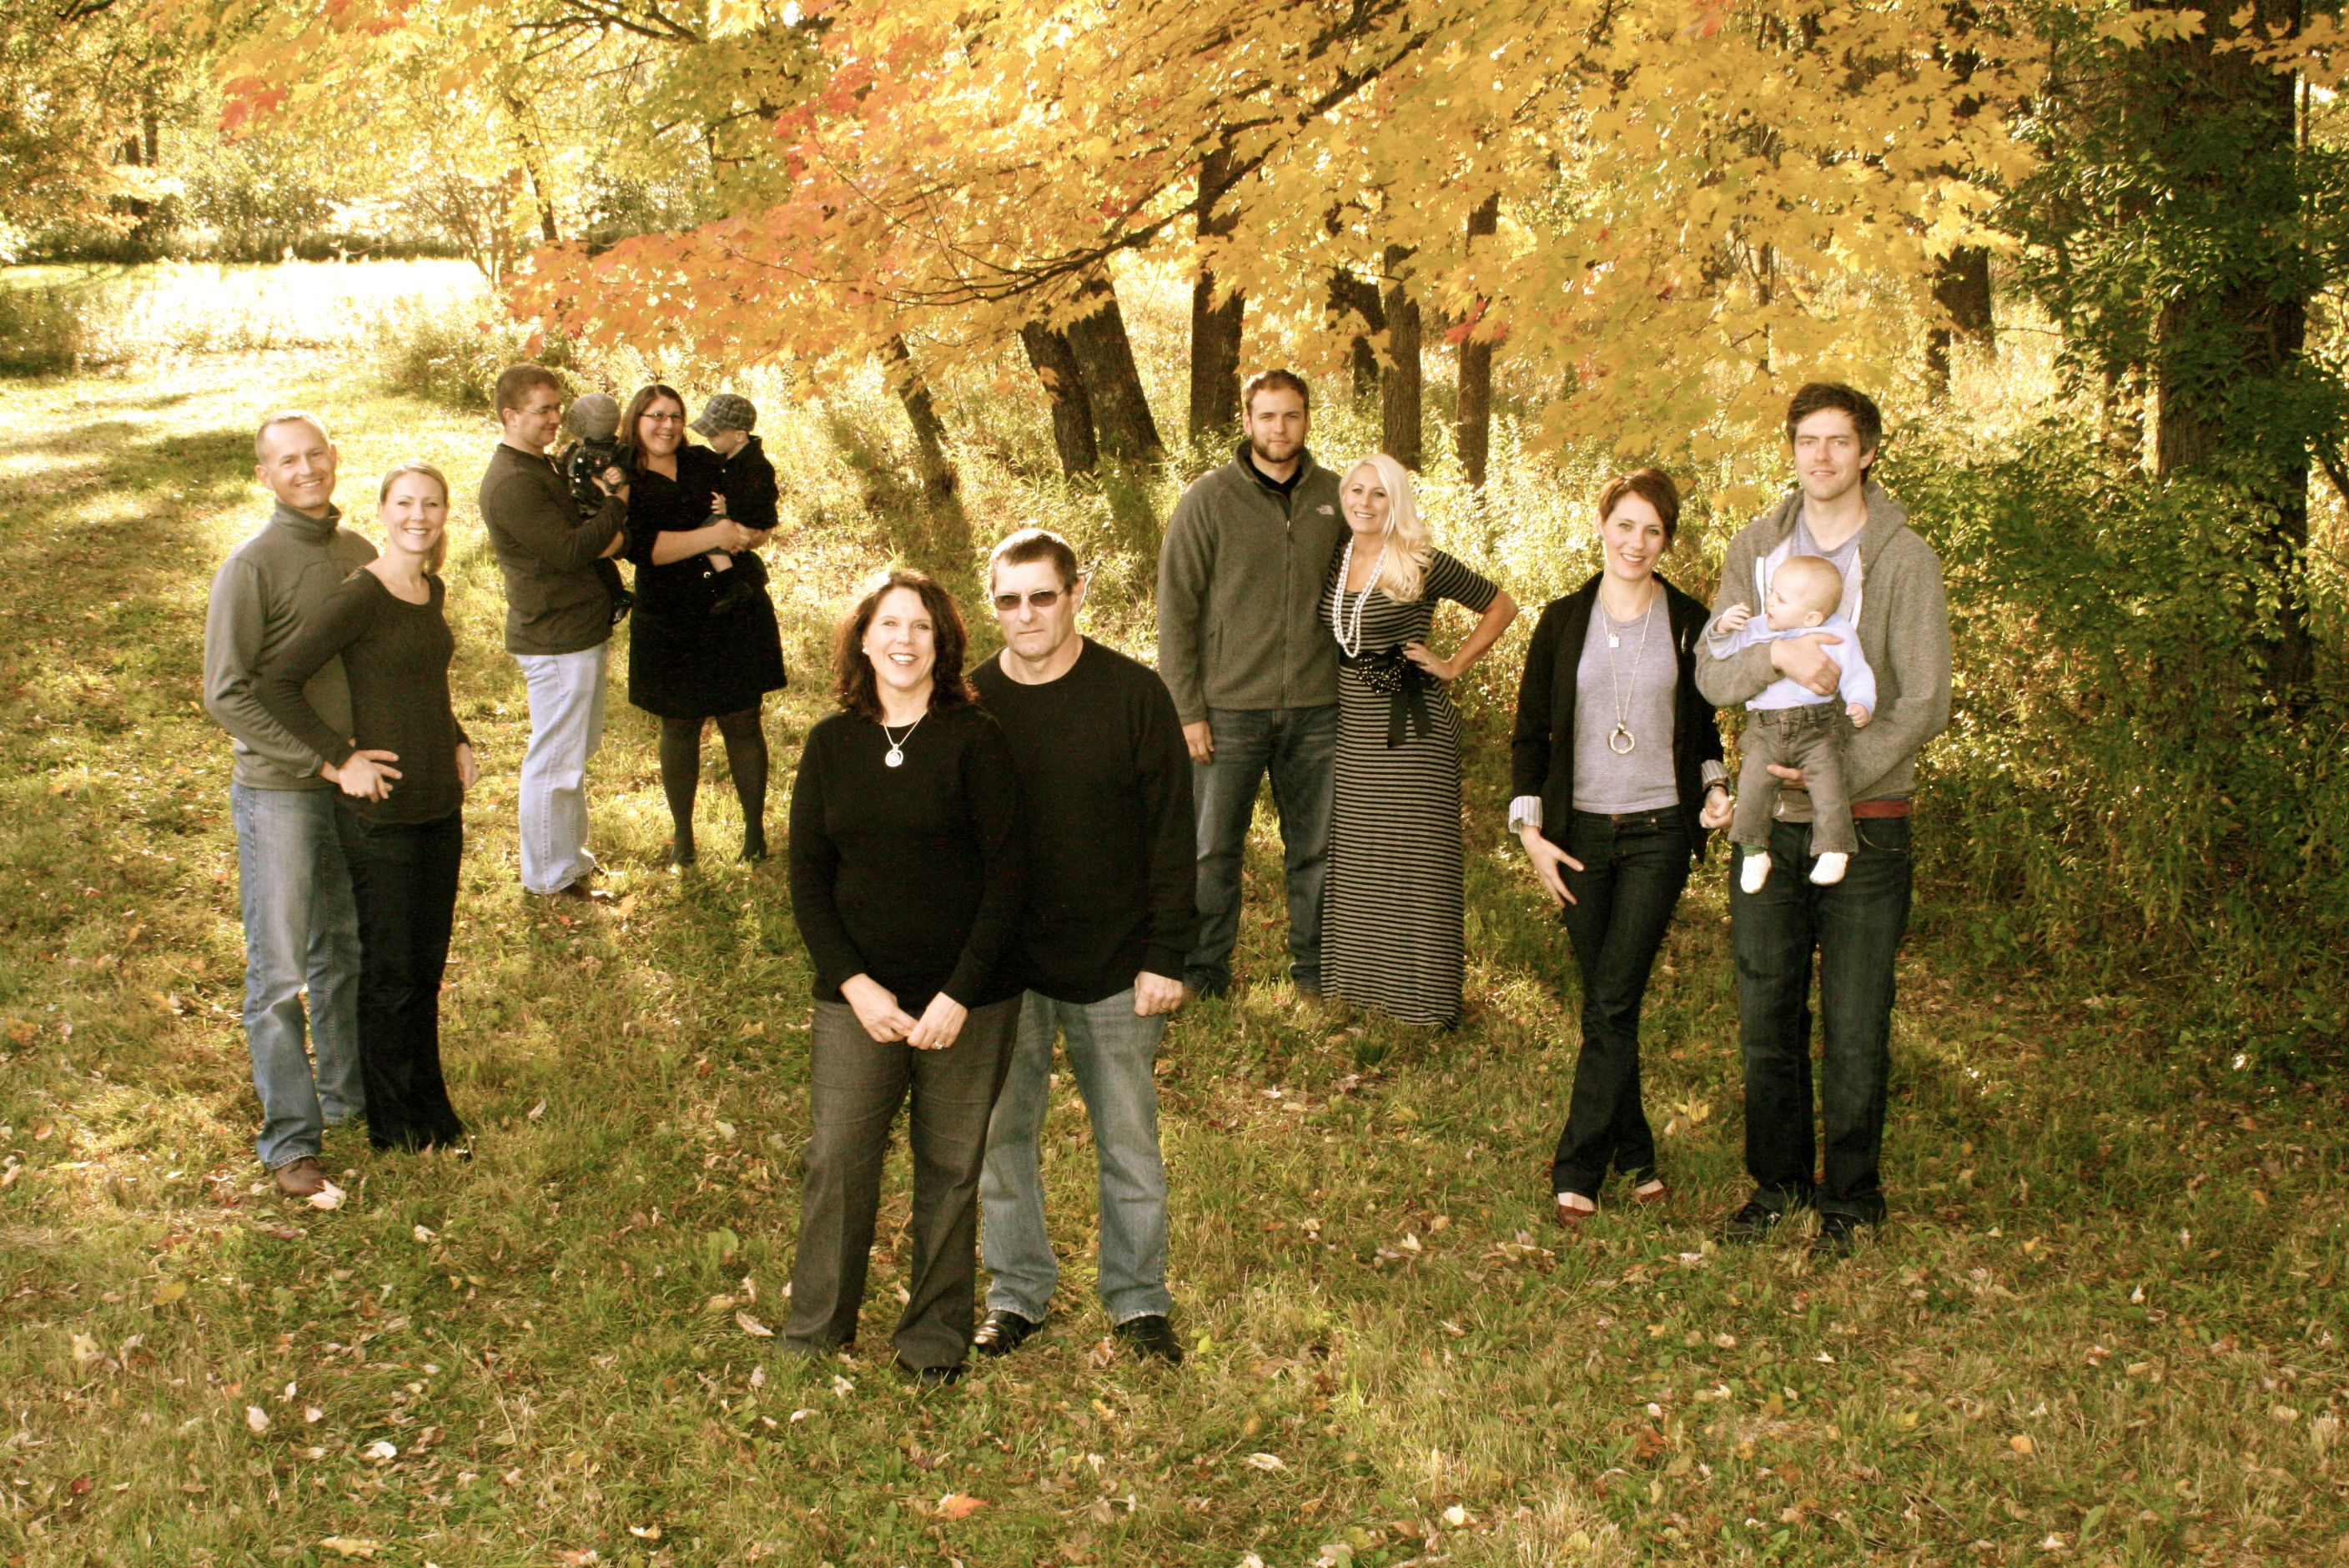 Fall family pictures photo ideas pinterest for Family of 3 picture ideas